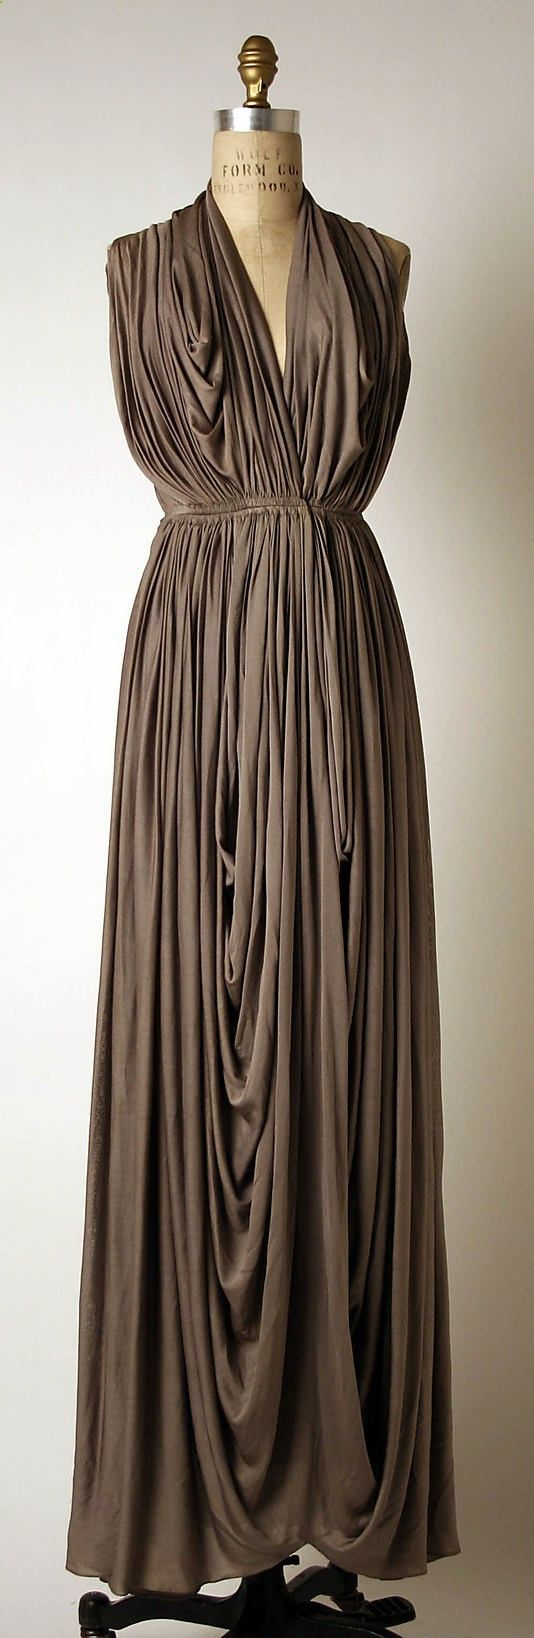 Dress, Evening Madame Grs (Alix Barton) (French, Paris 19031993 Var region) Date: 193739 Culture: French Medium: silk